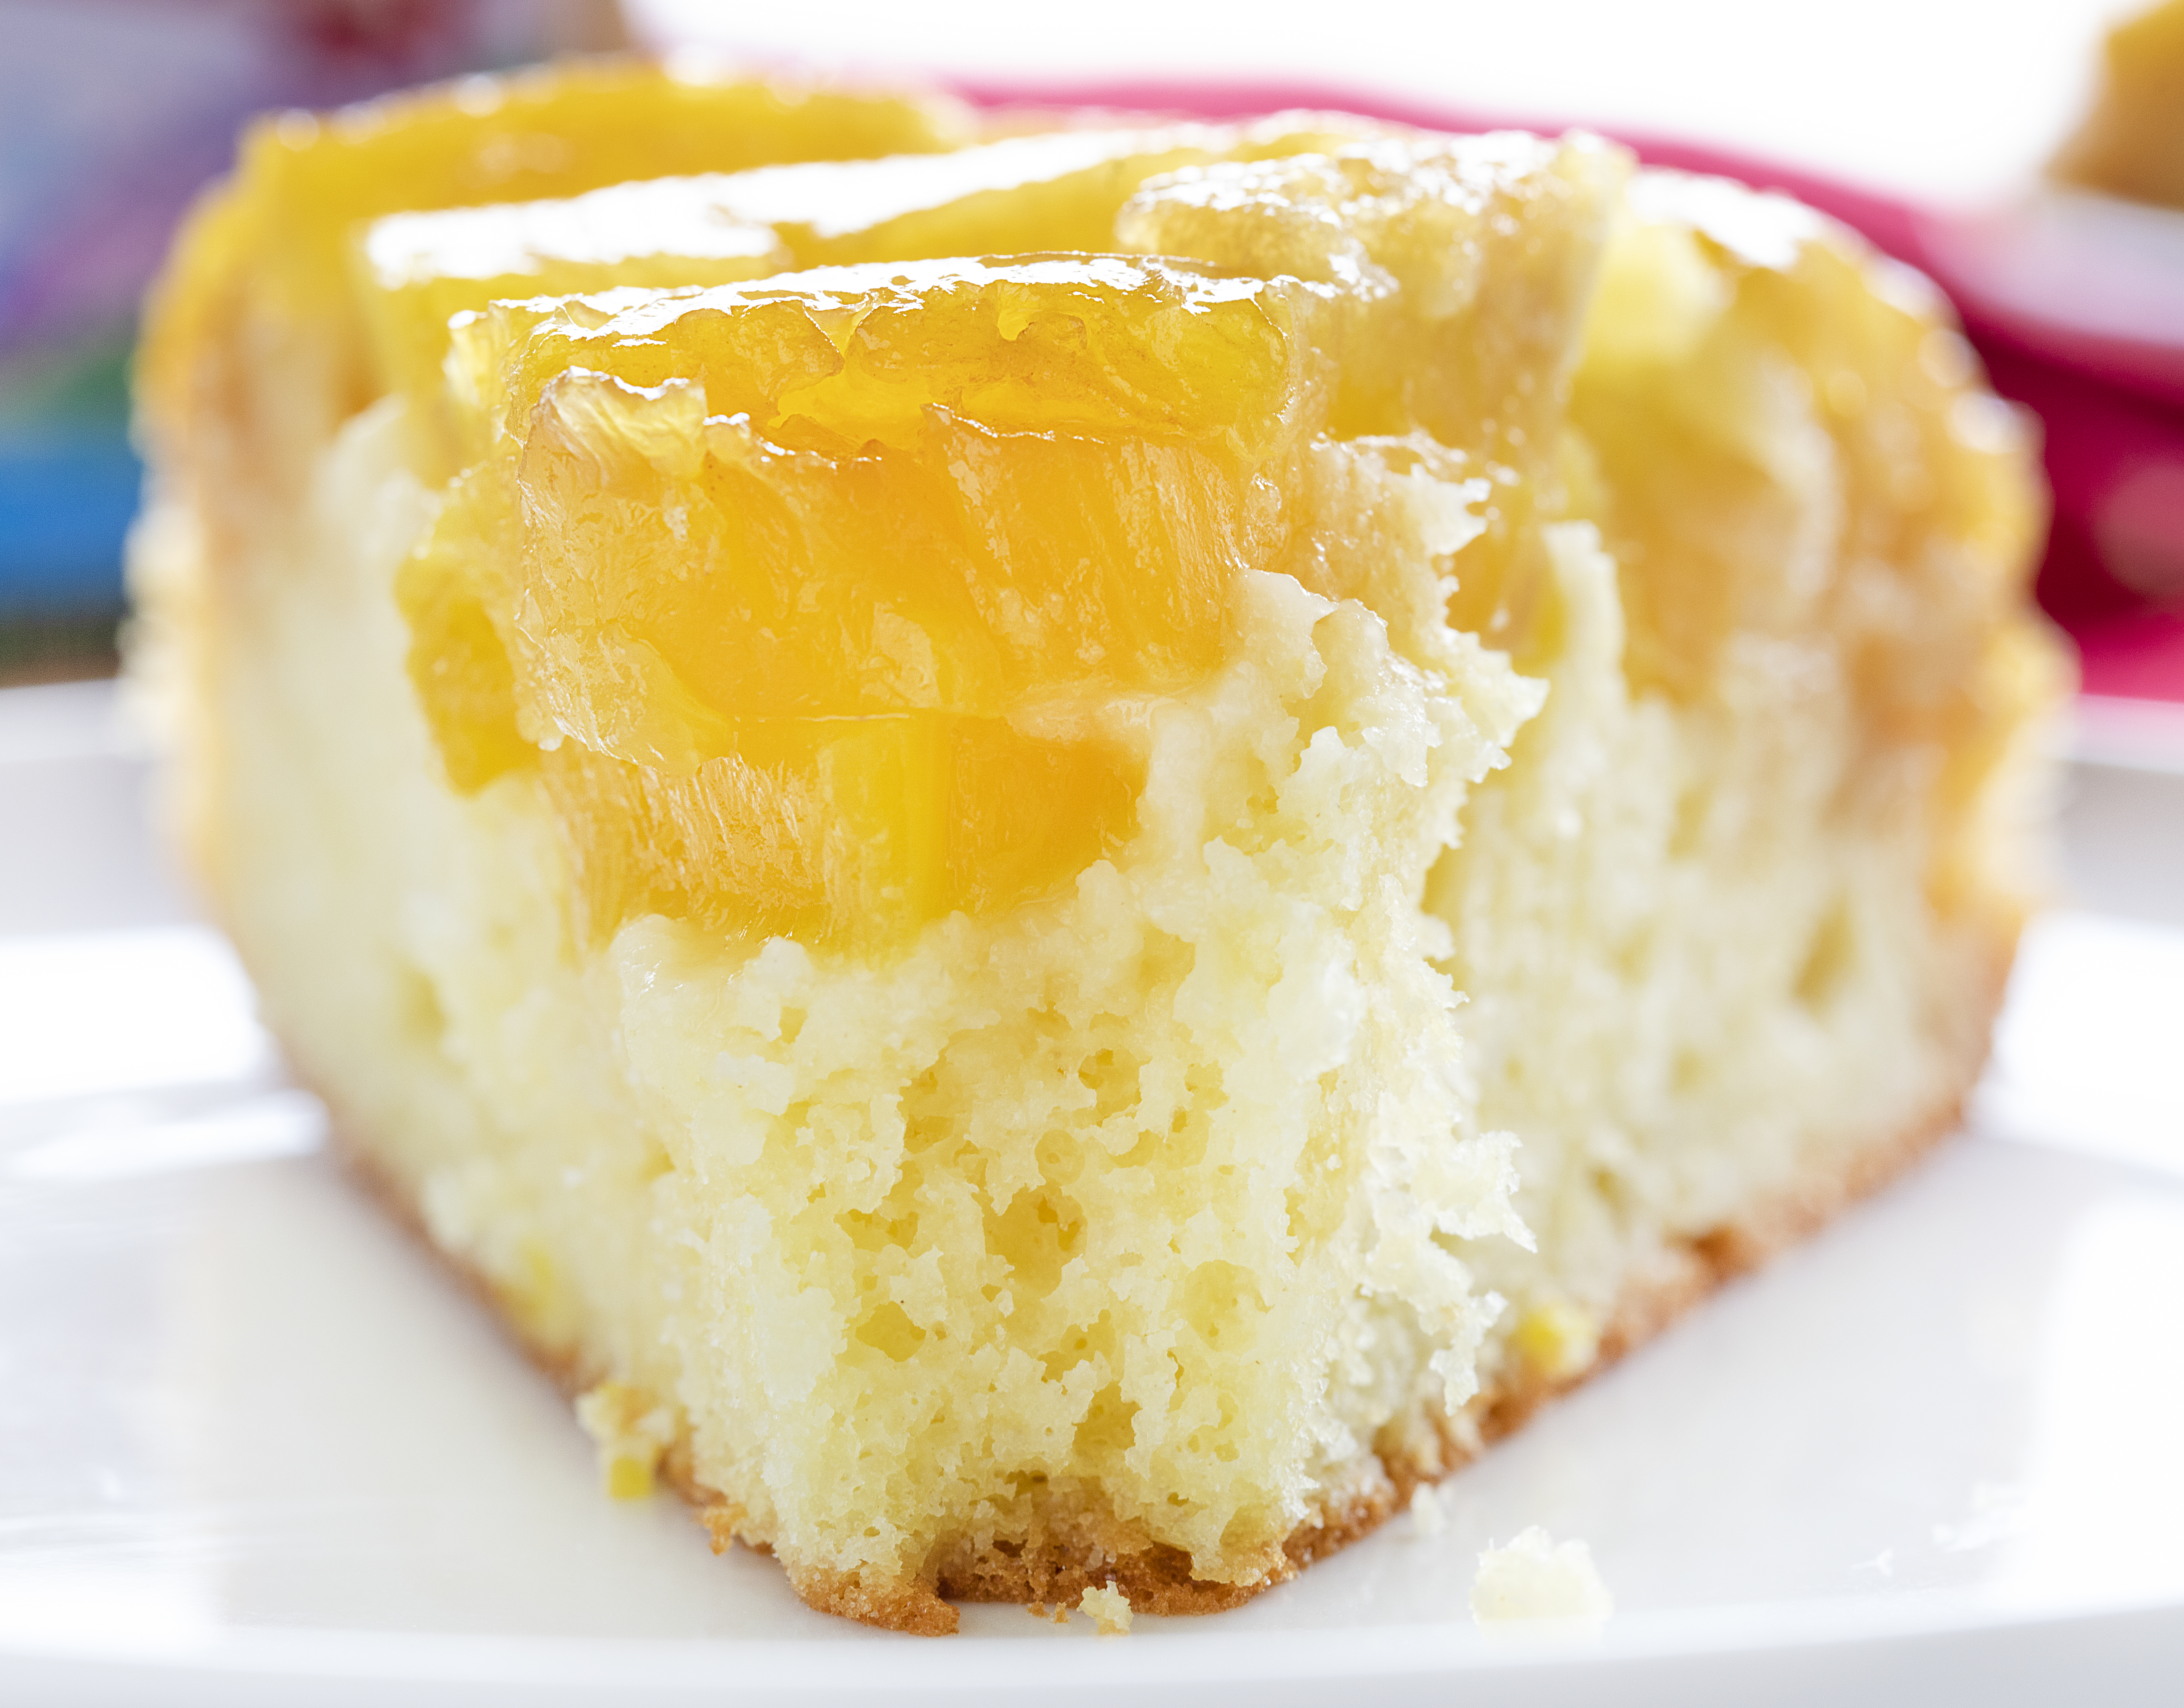 https://iambaker.net/wp-content/uploads/2019/06/pineapple-upside-9.jpg